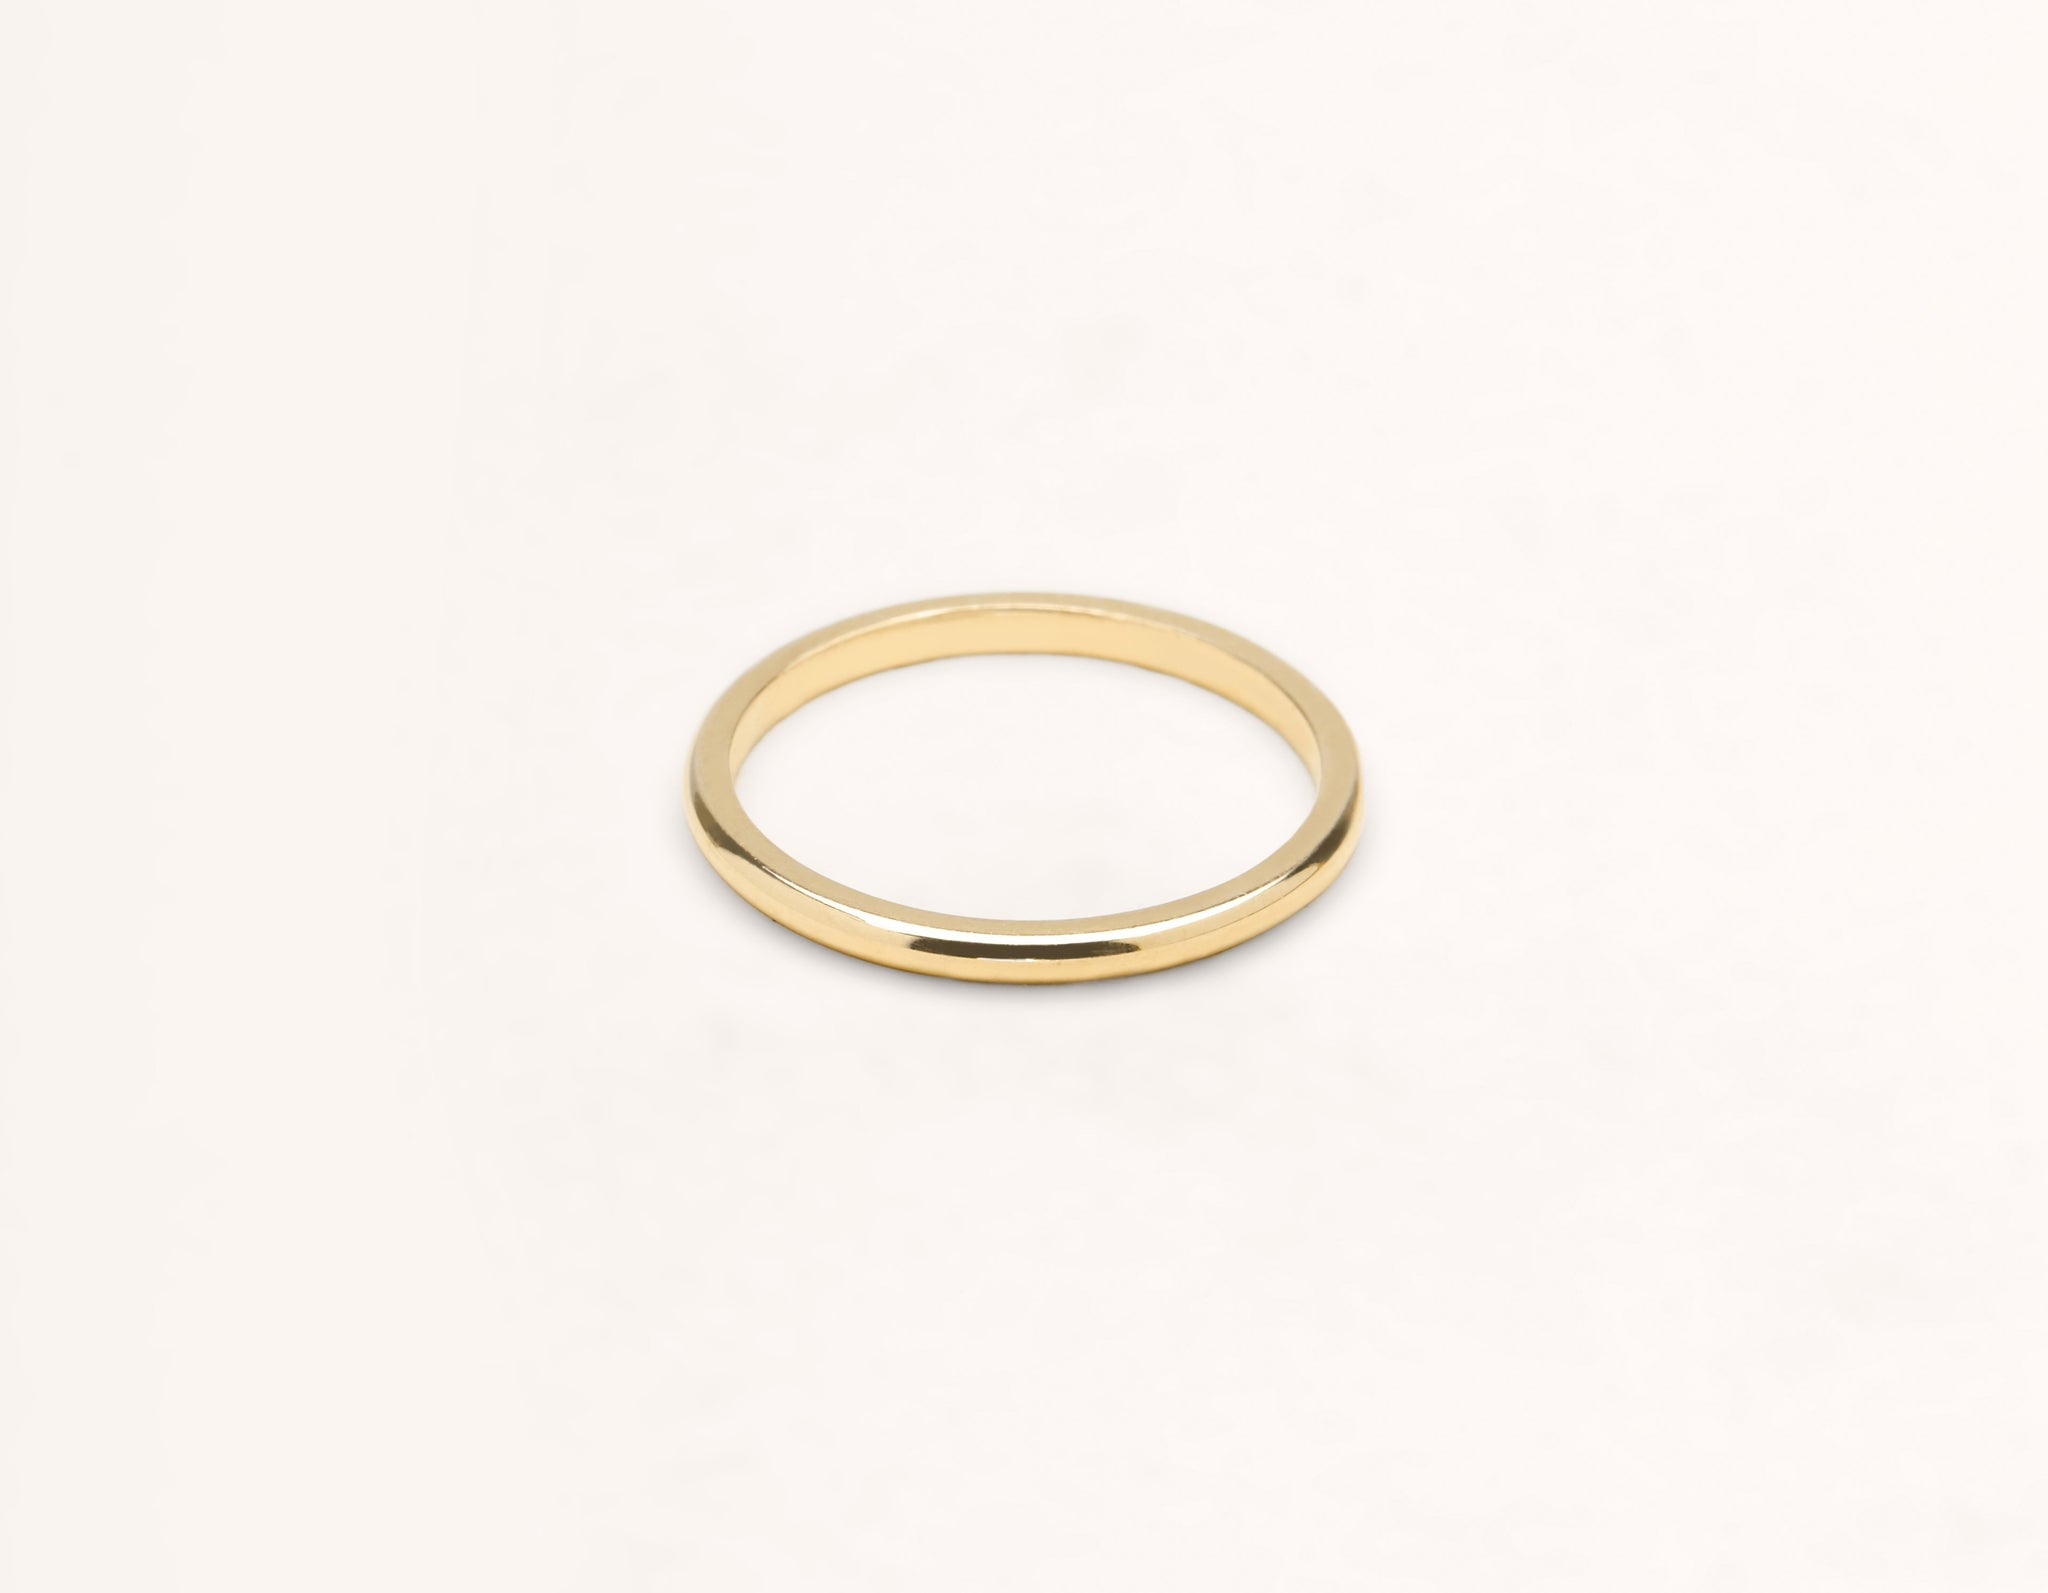 Simple modern 18k solid yellow gold 1.5 mm Round men's women's Wedding Band Vrai & Oro